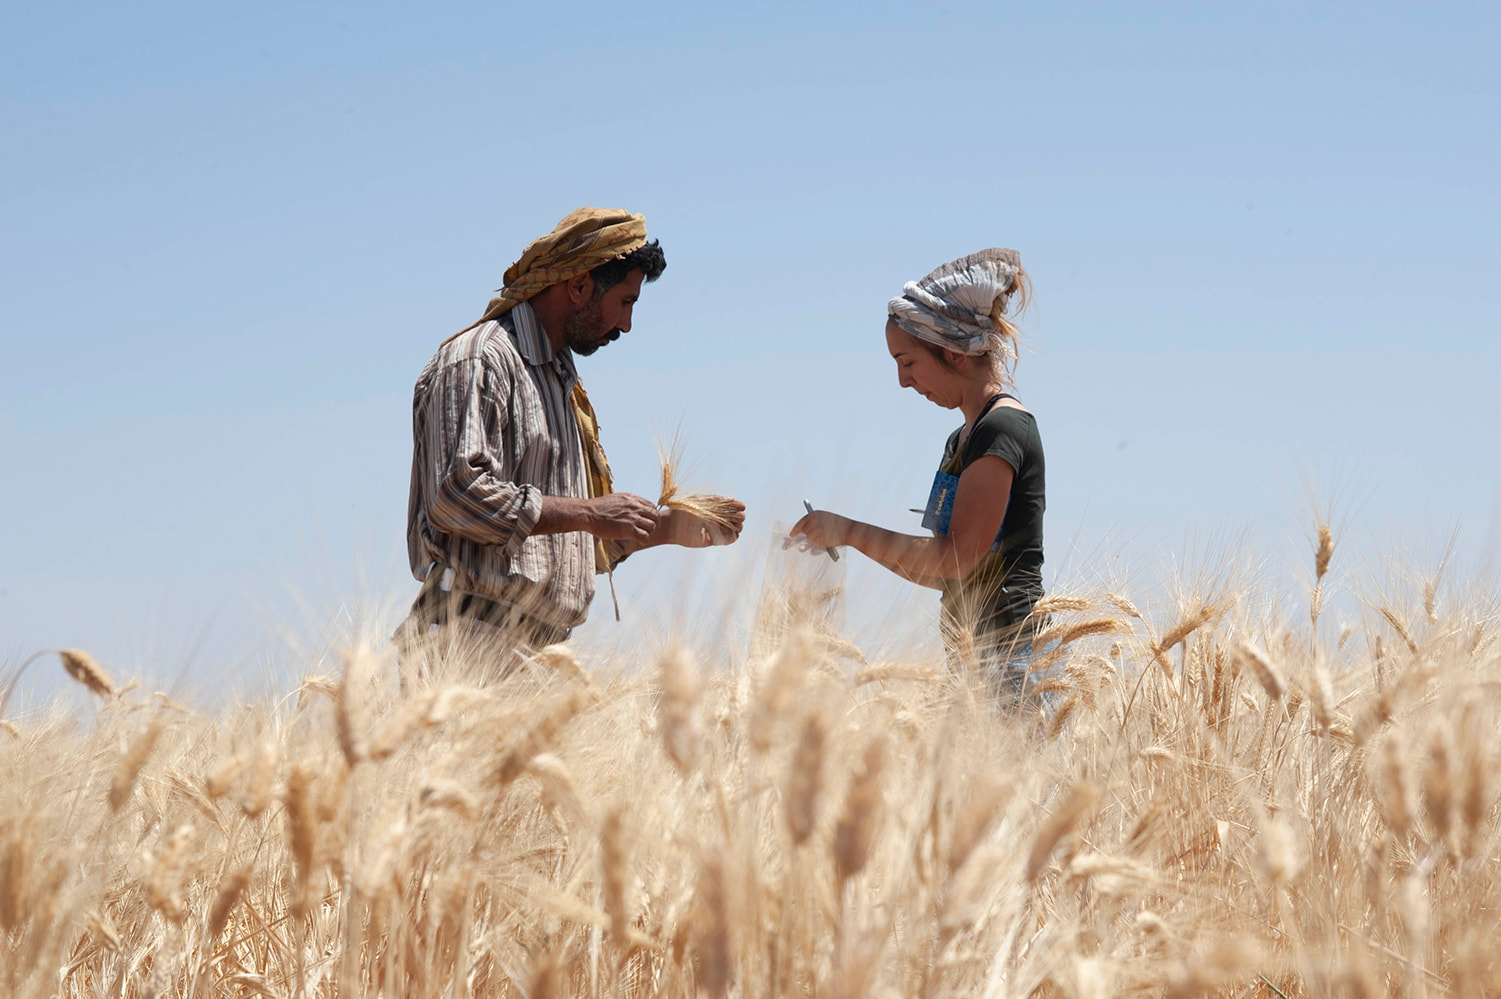 Man and woman standing in field of wheat